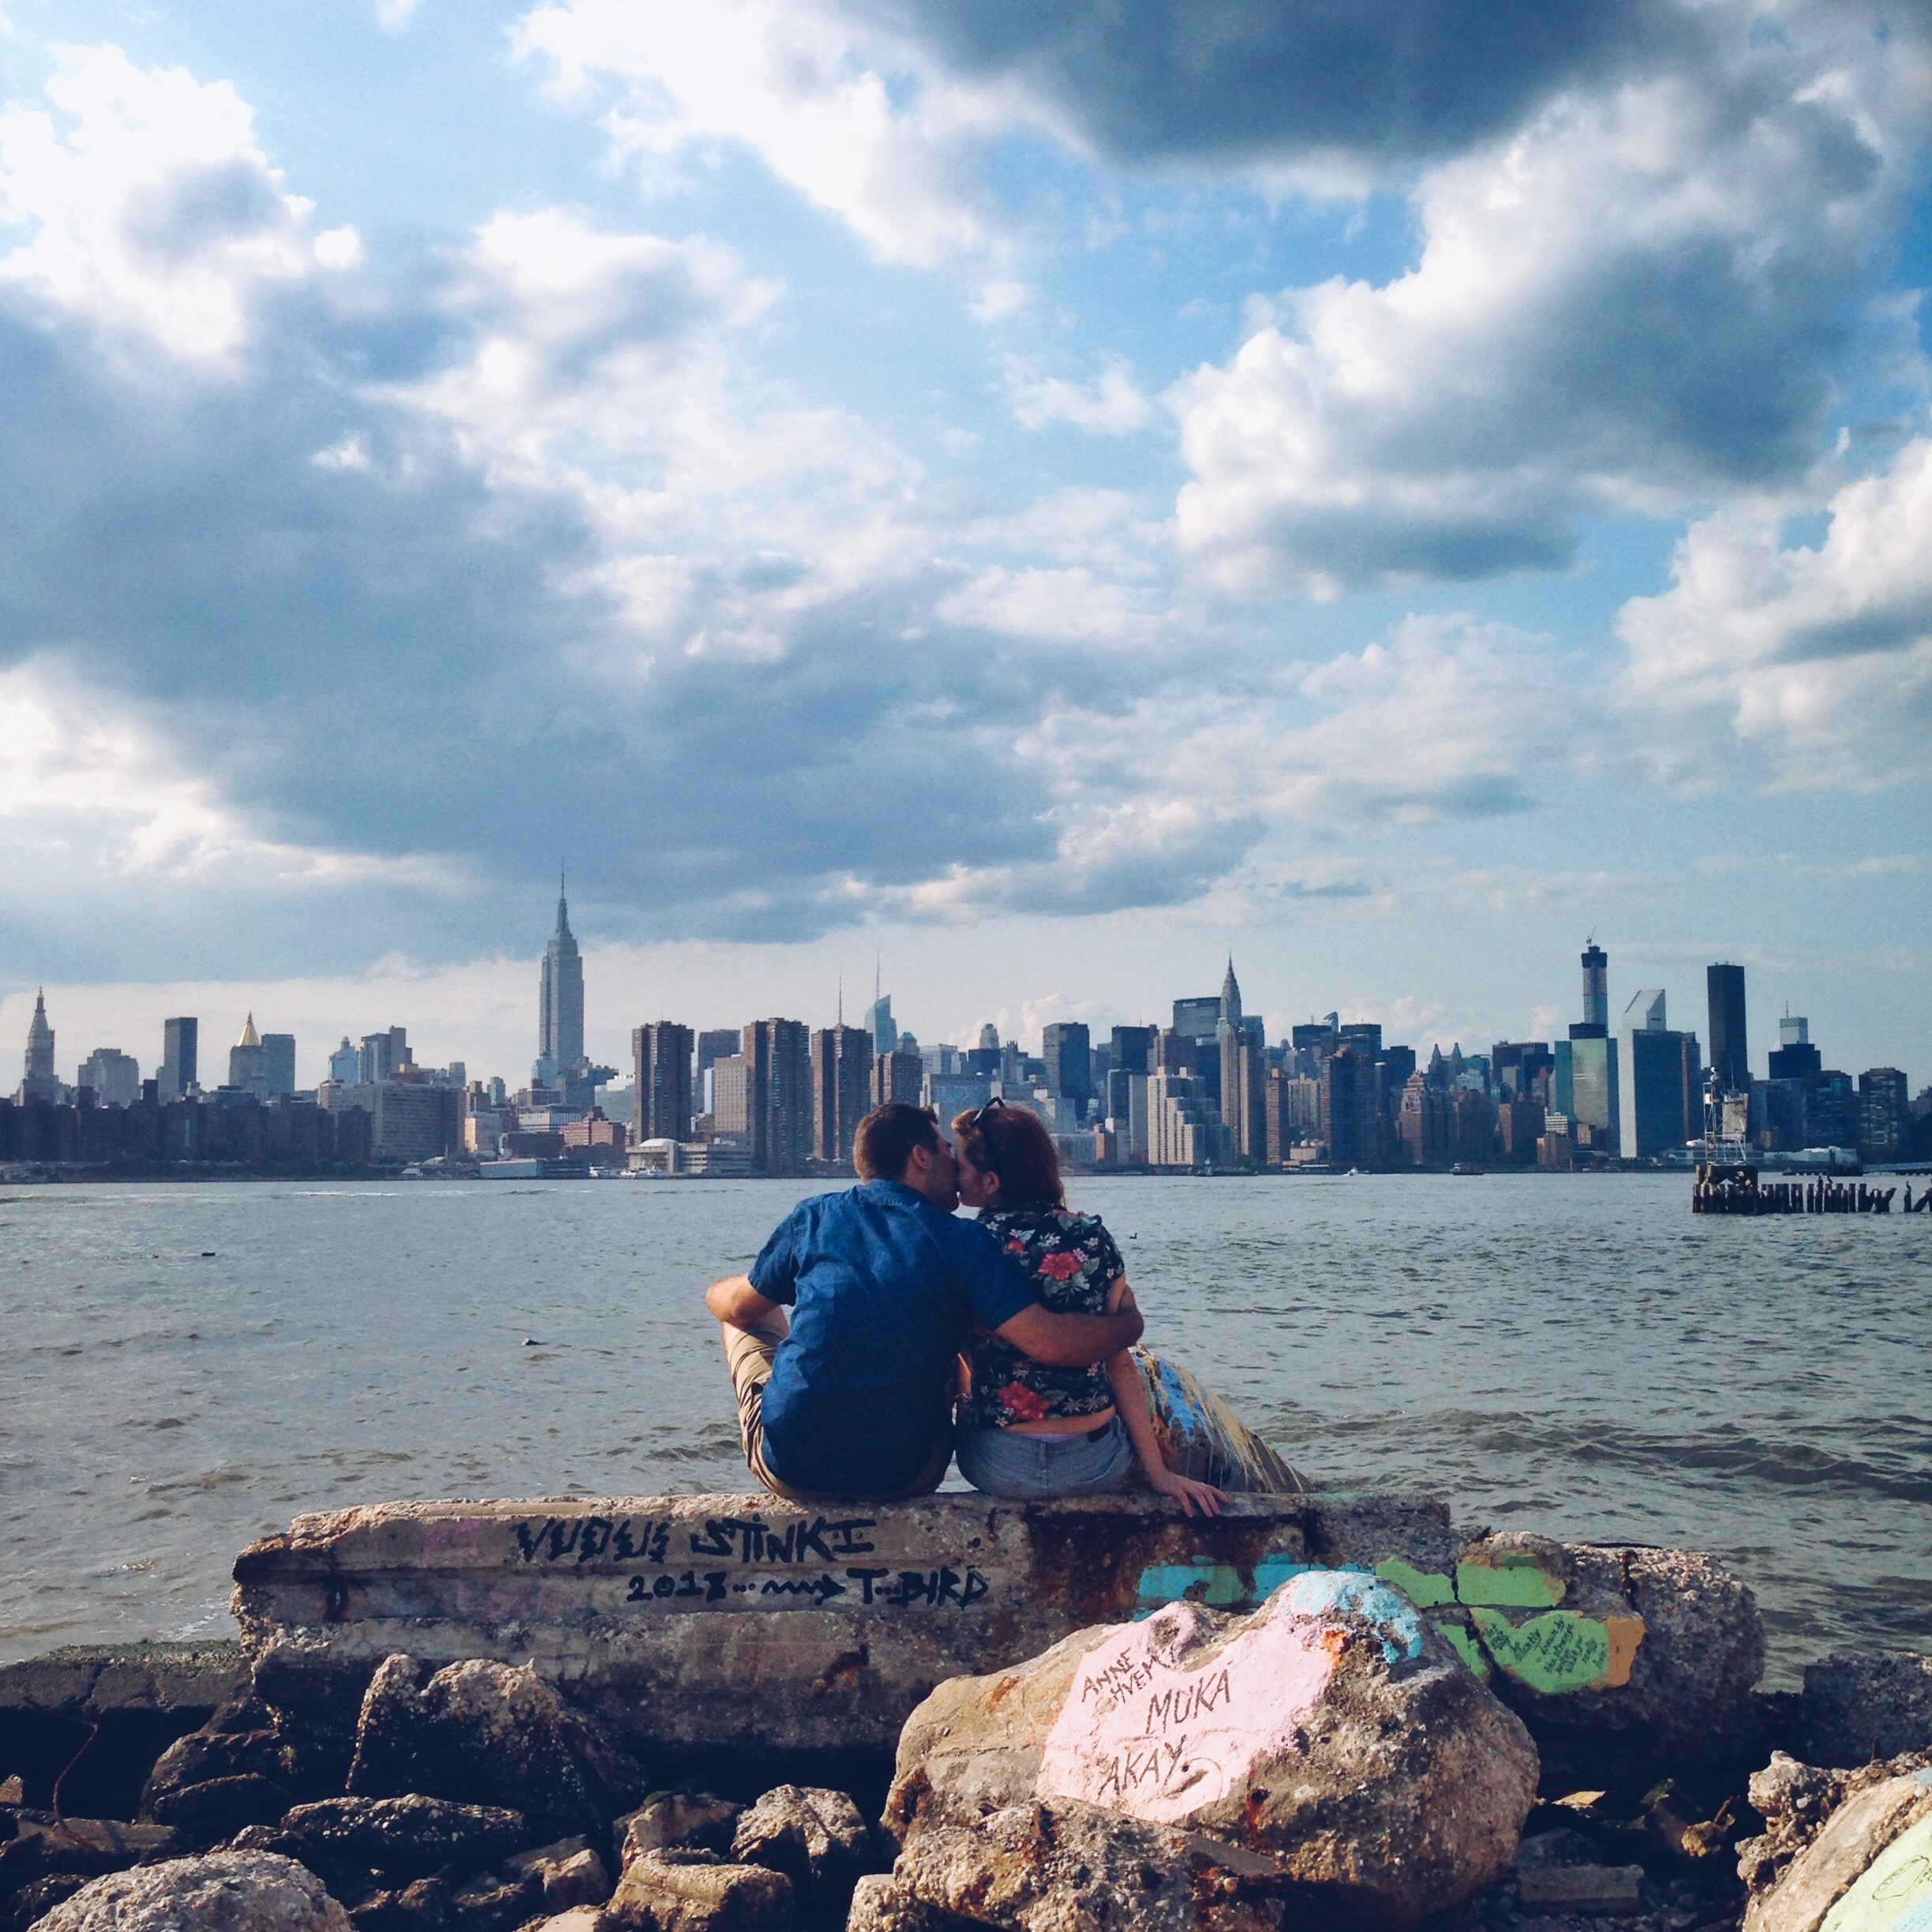 Kissing couple, Brooklyn, New York